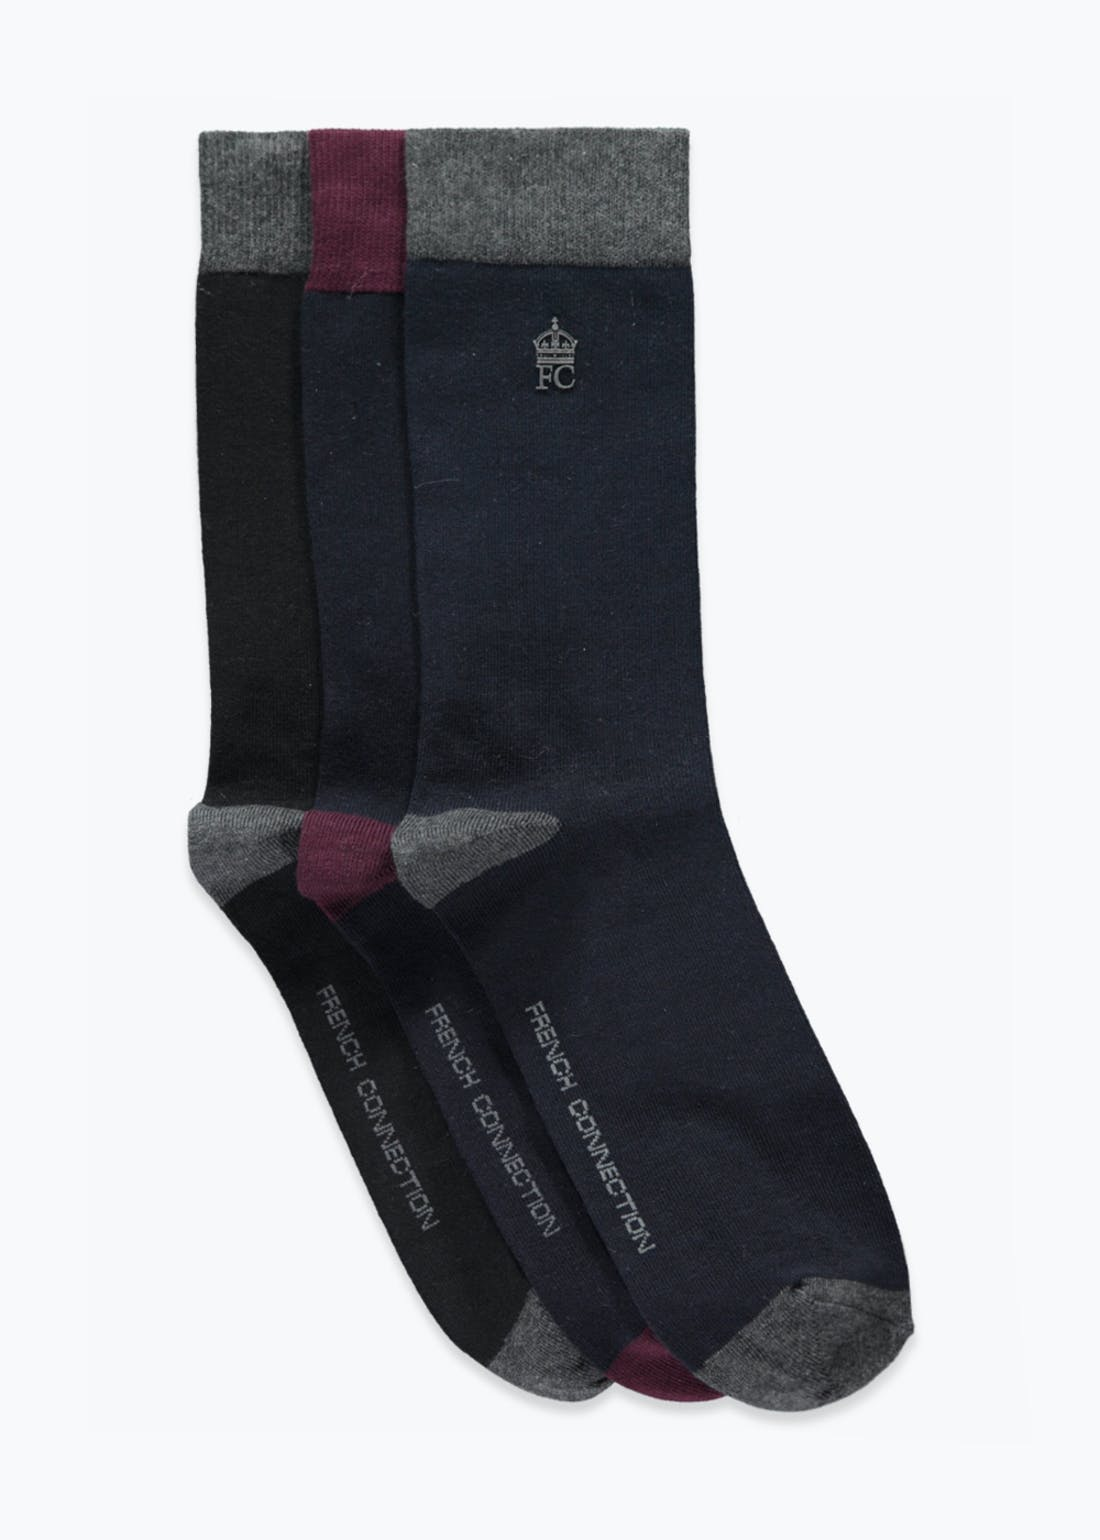 3 Pack French Connection Socks